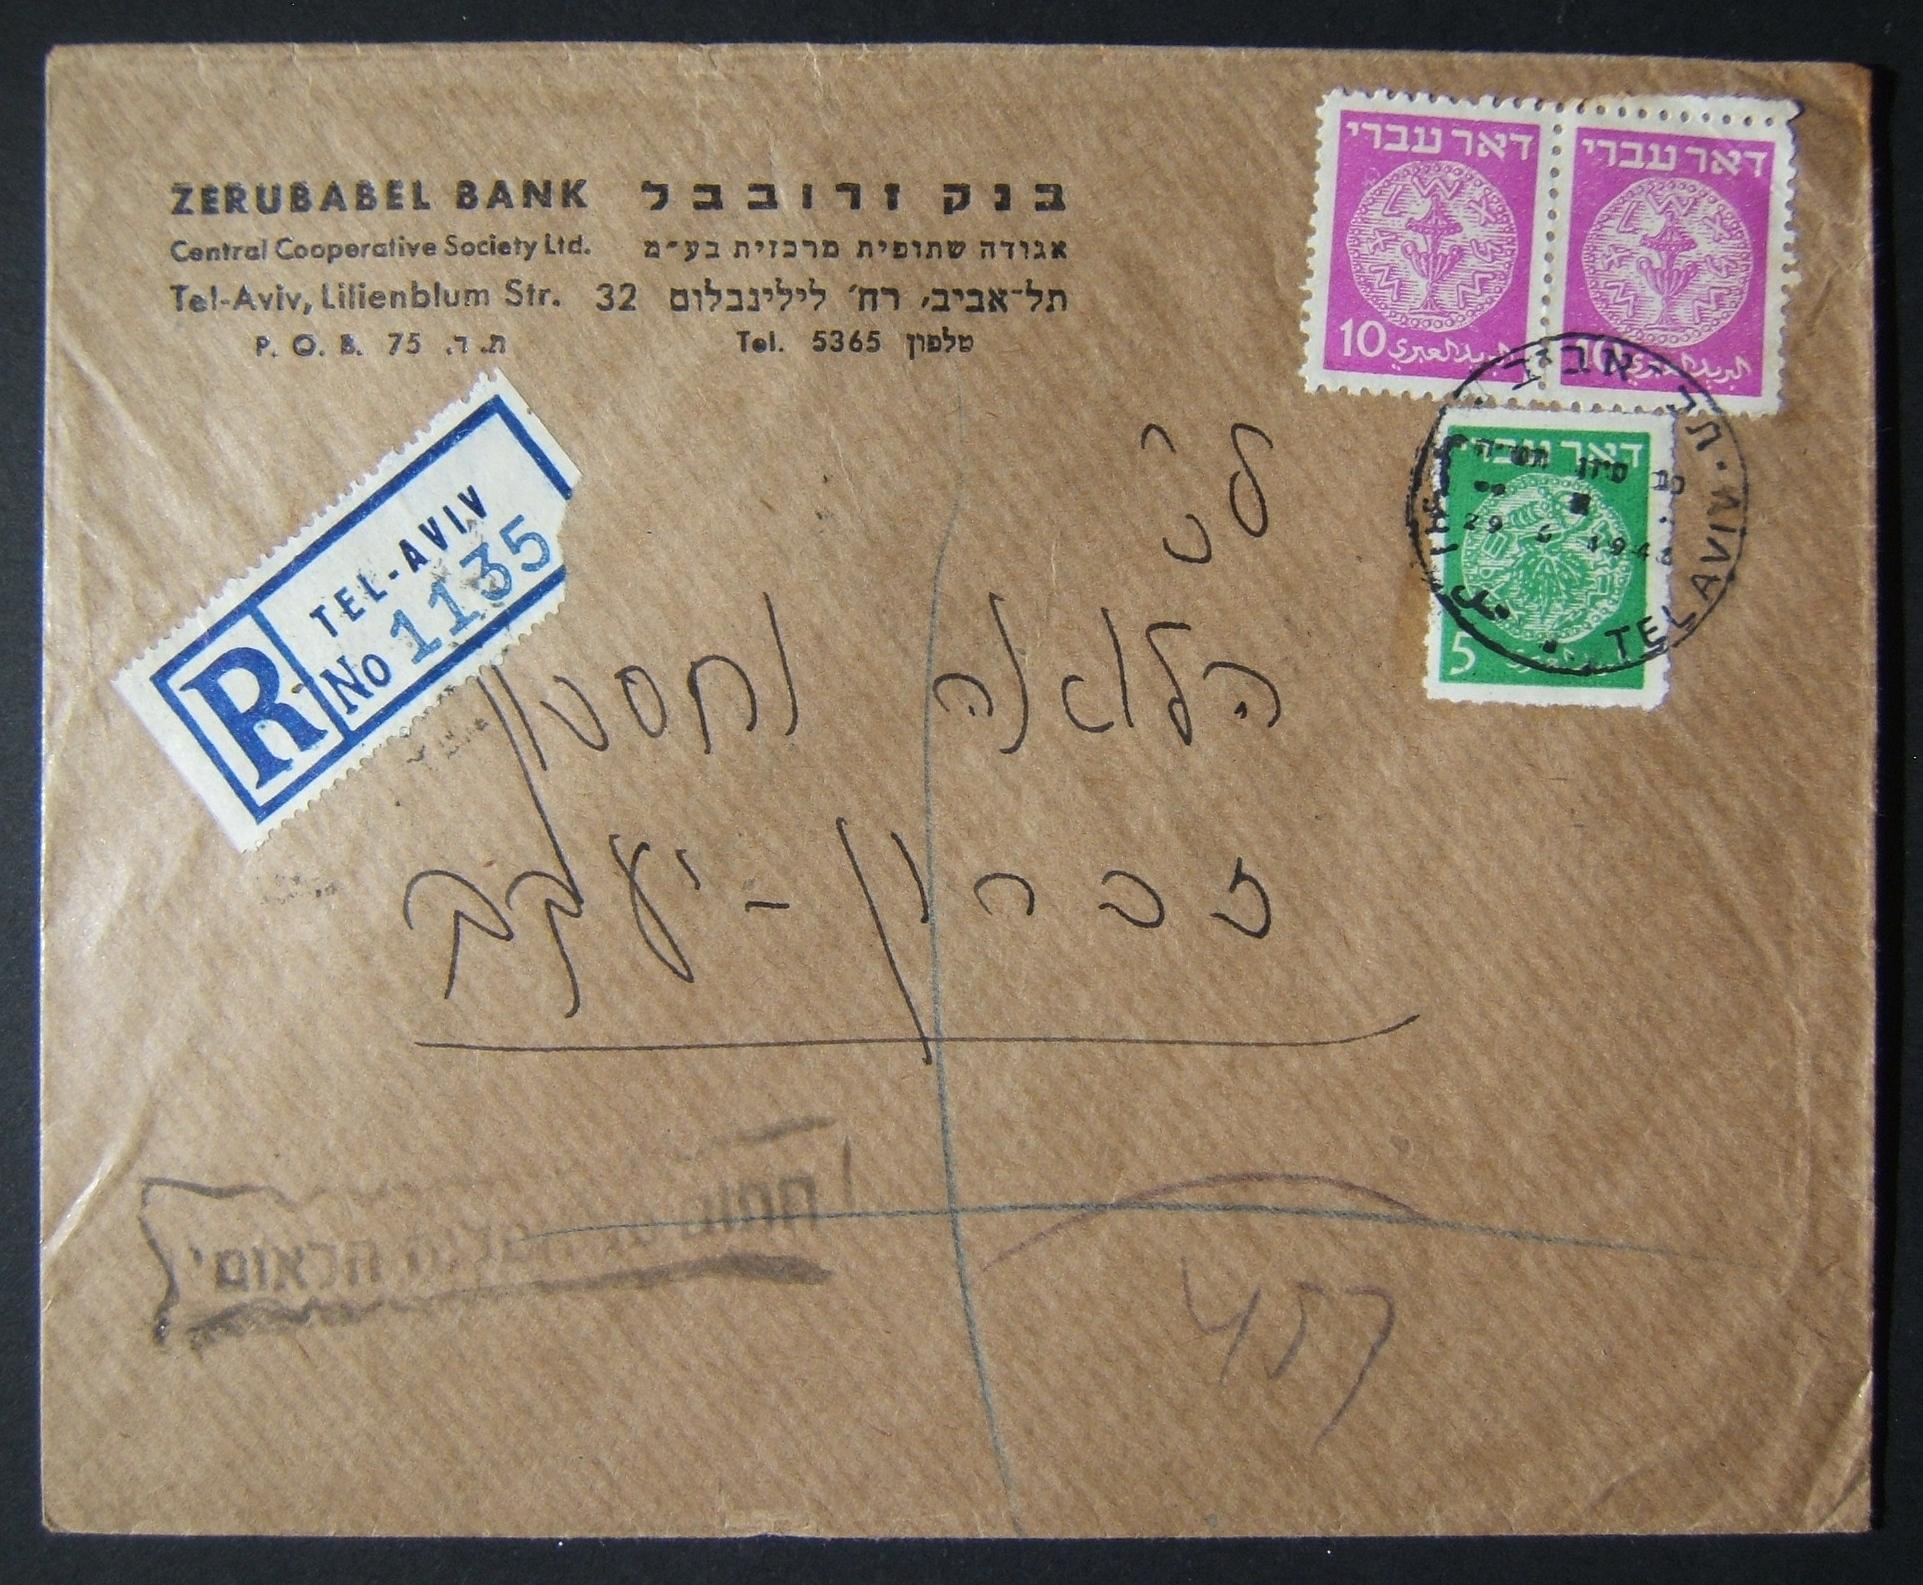 6-1948 registered mail from TEL AVIV to ZICHRON with Mandate postmark on last day of use